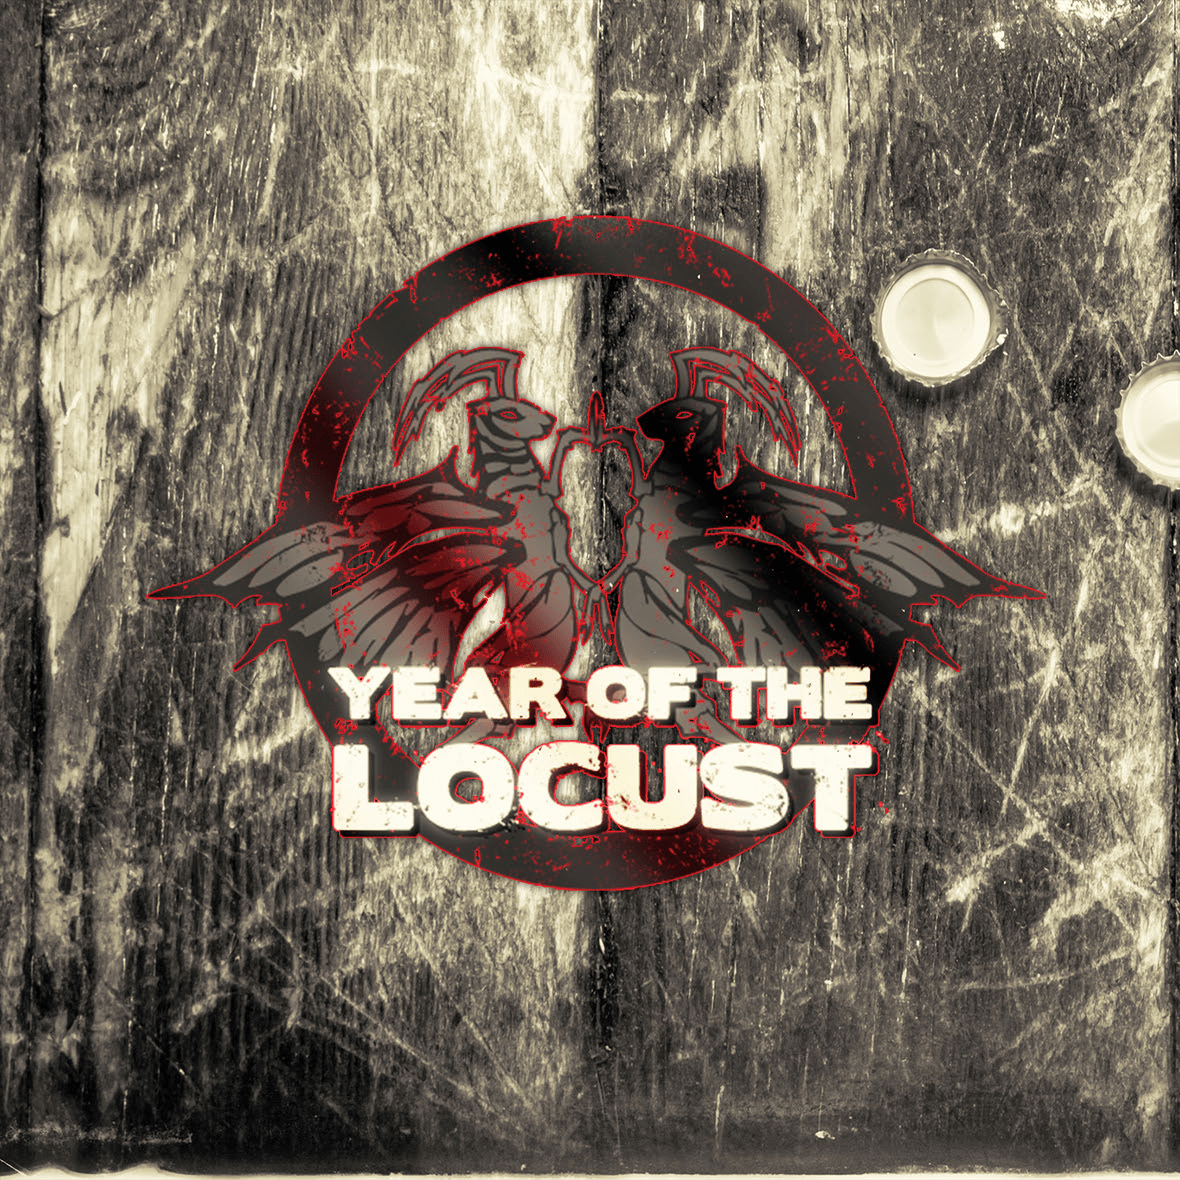 An Interview with Scott McGiveron of Year Of The Locust